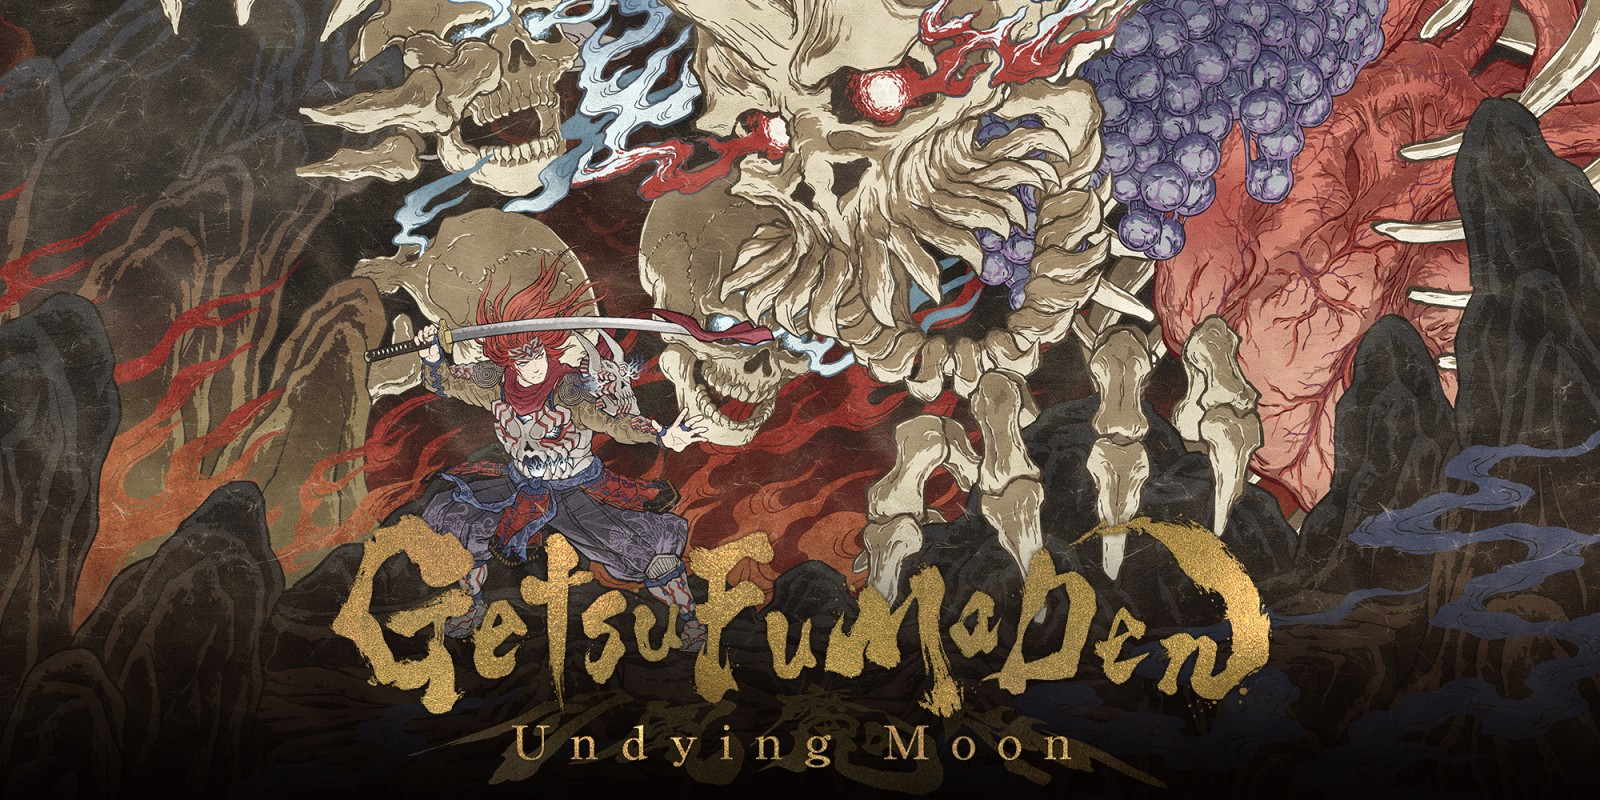 GETSUFUMADEN: UNDYING MOON disponibile da oggi in Accesso Anticipato